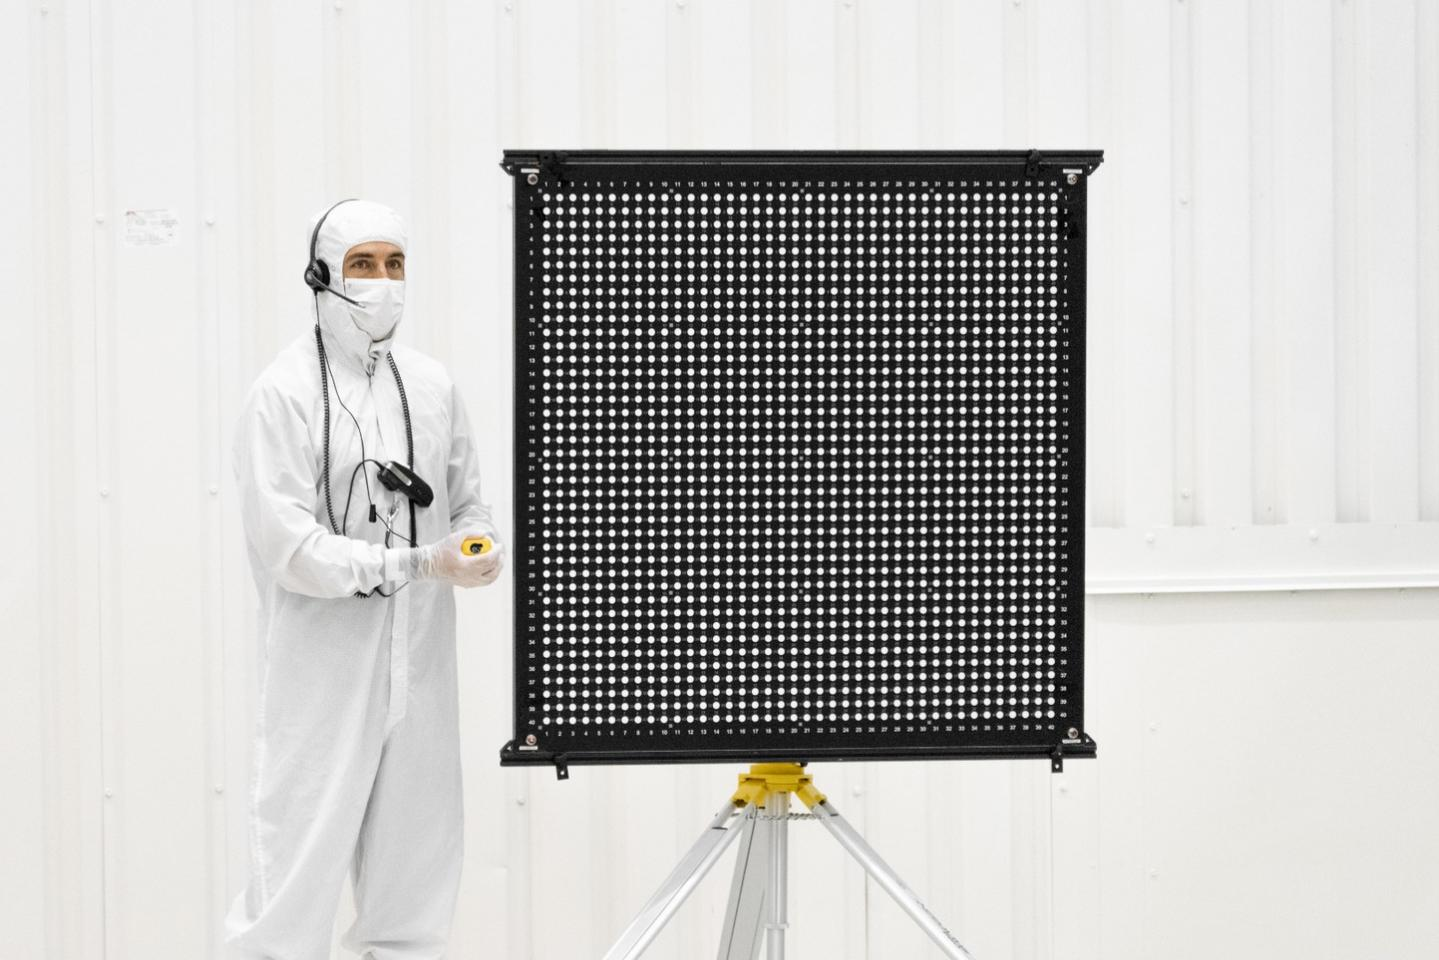 Engineer Chris Chatellier stands next to a target board with 1,600 dots